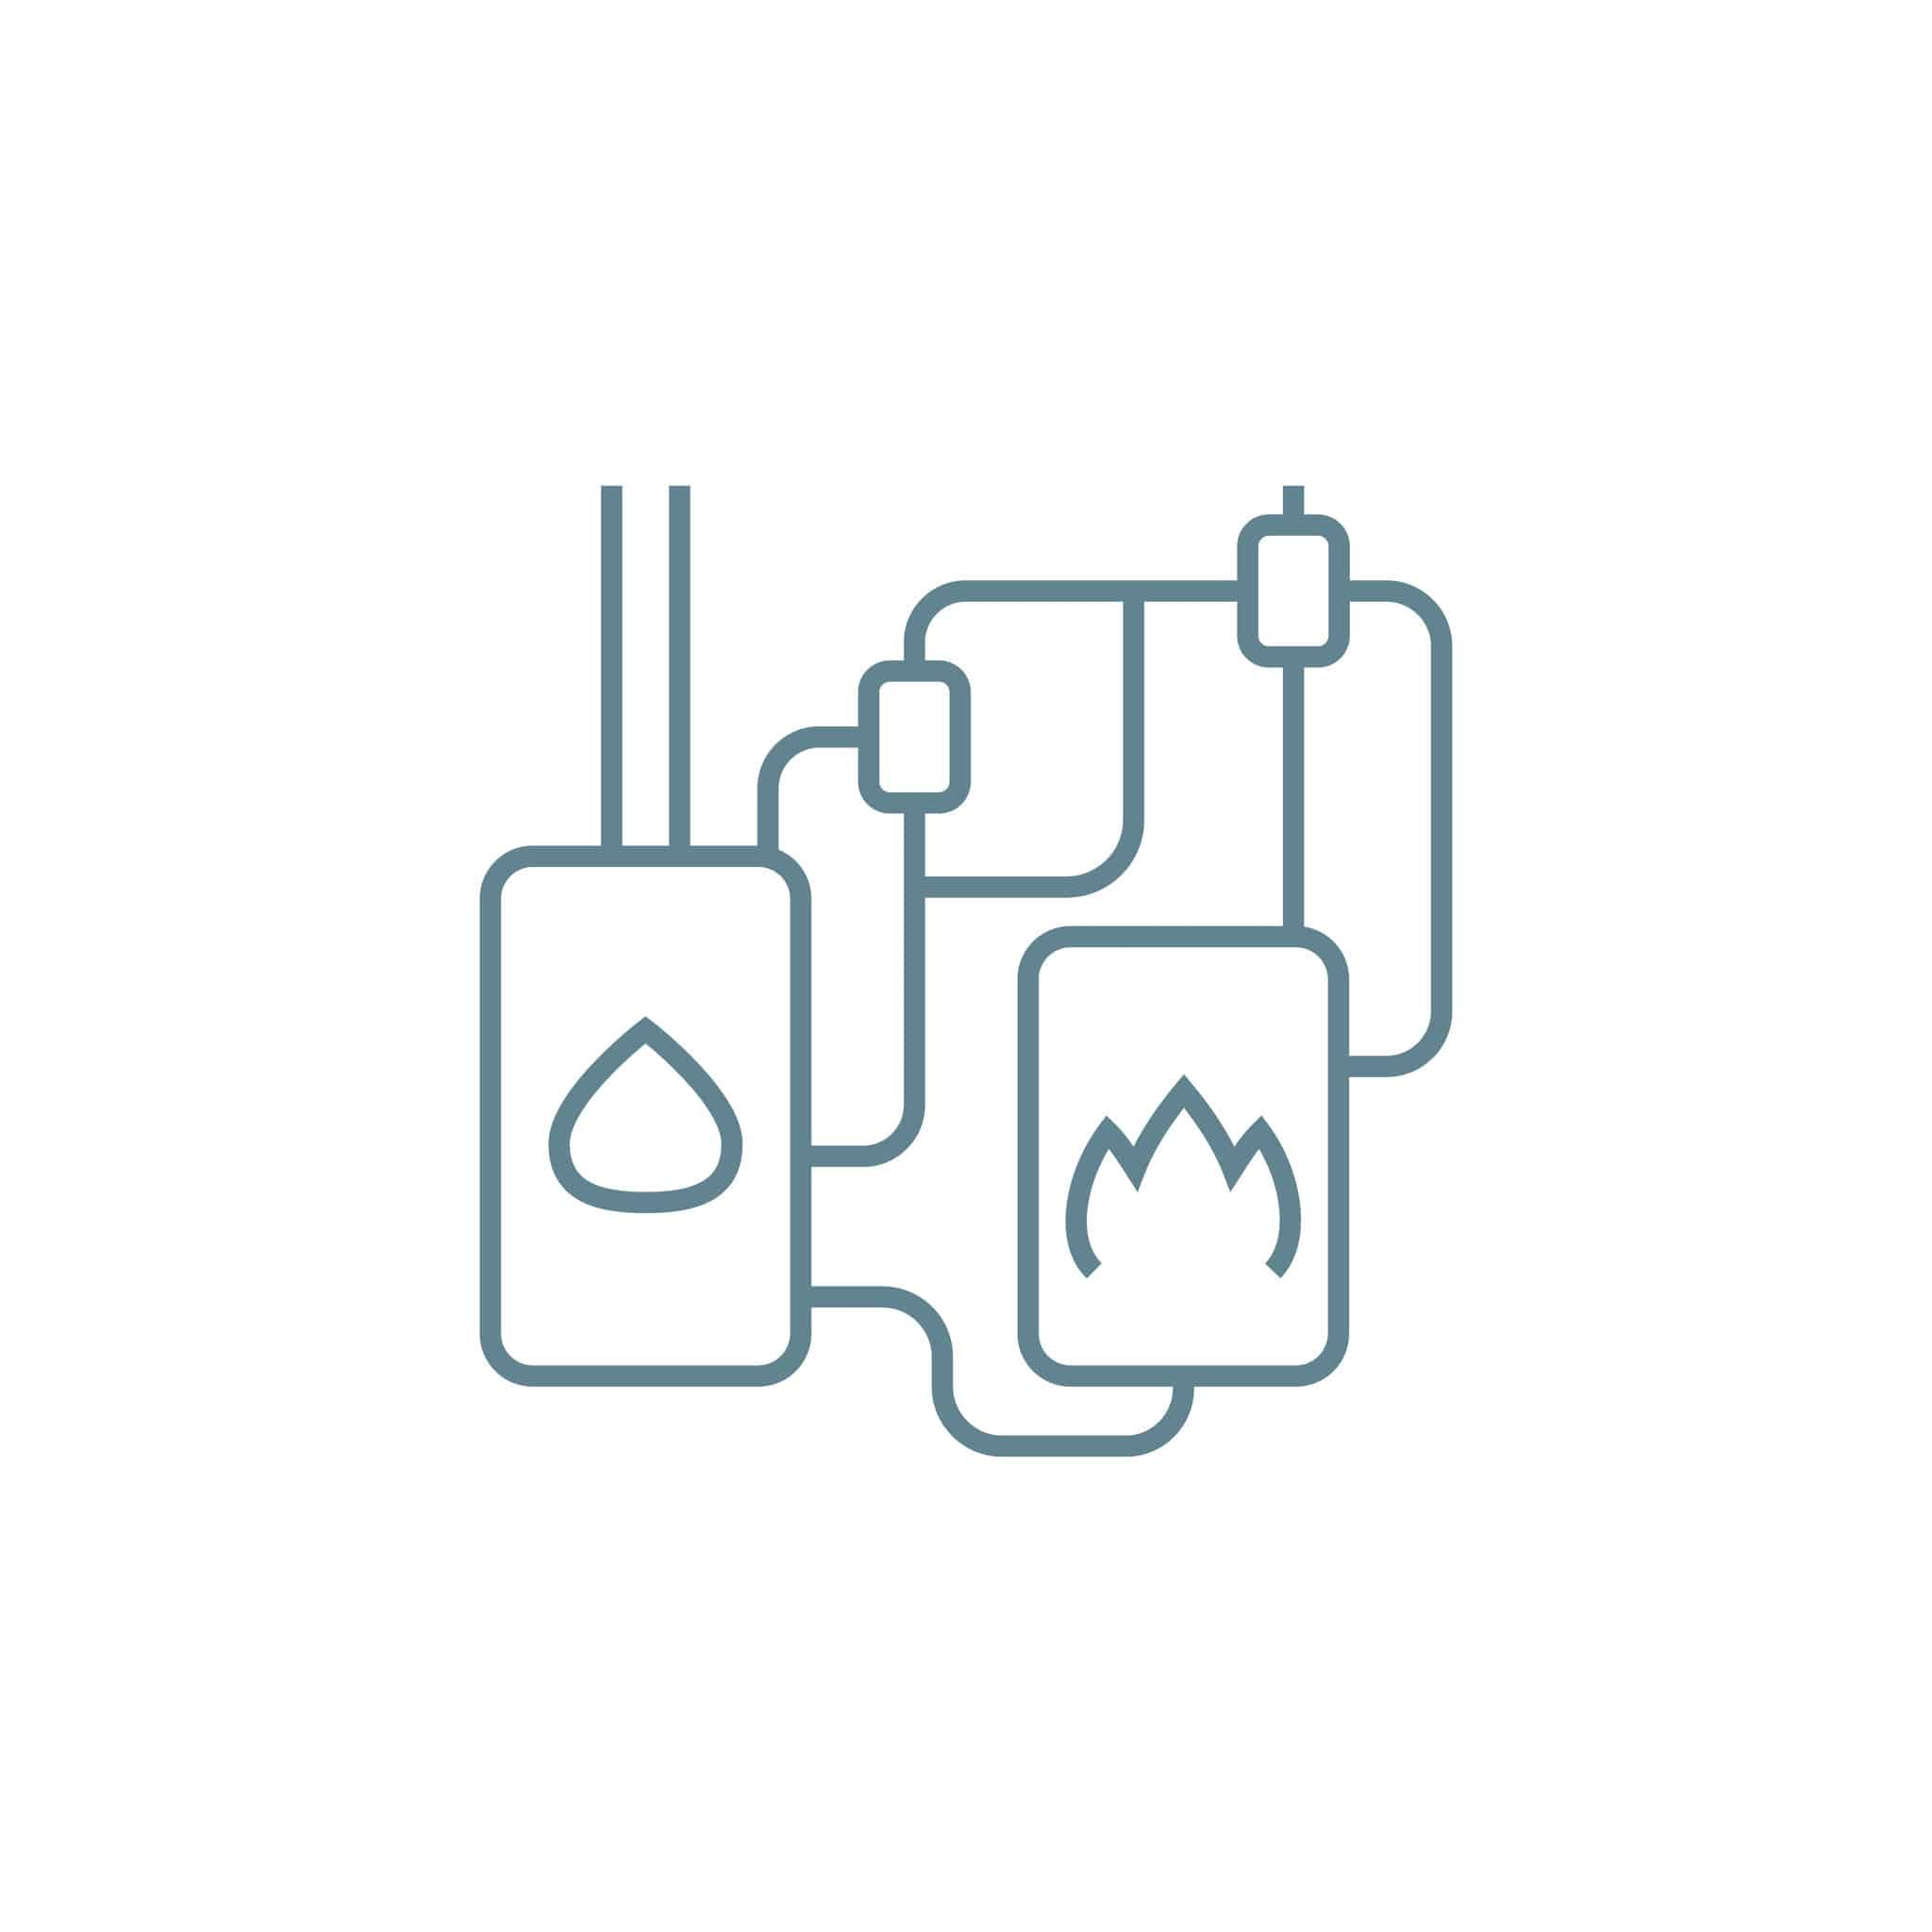 Autonomous heating system line icon, vector illustration. Autonomous heating system linear concept sign.